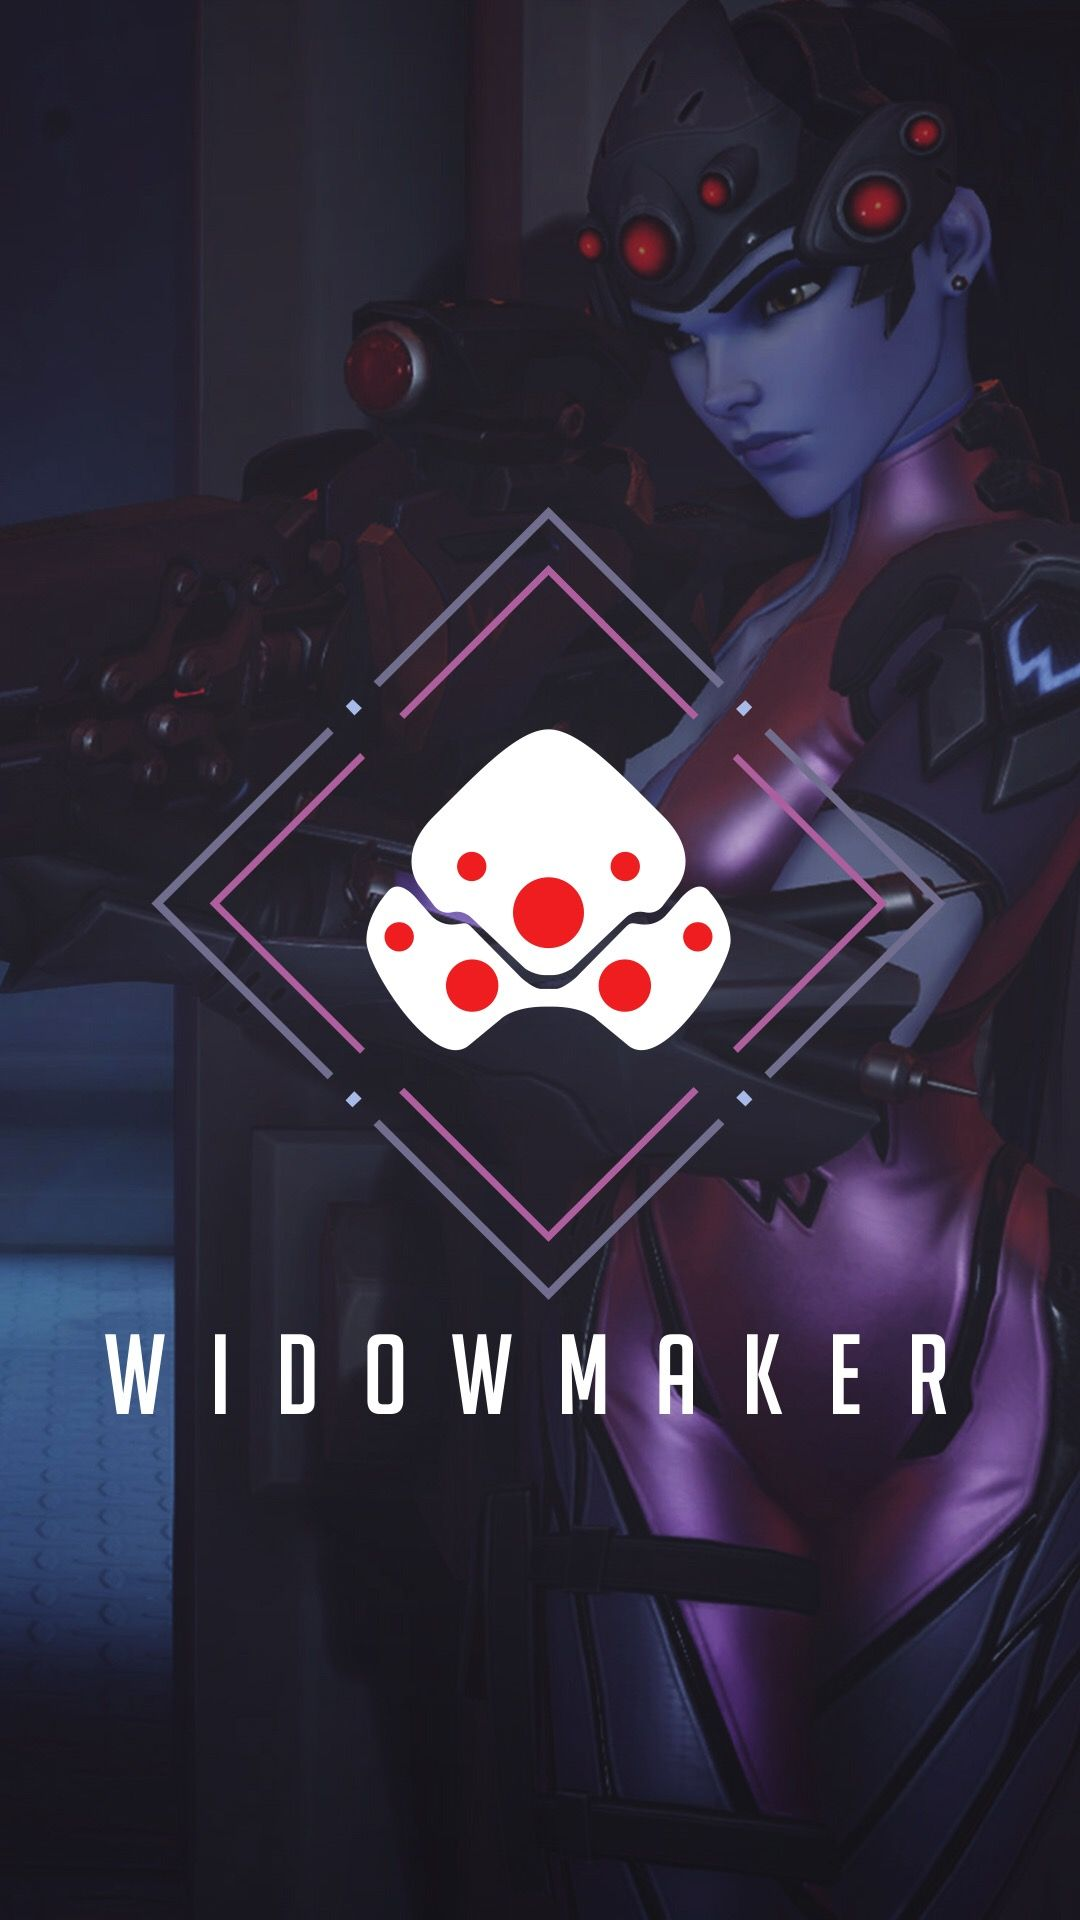 Pin by PhantomSoft on Overwatch Overwatch wallpapers